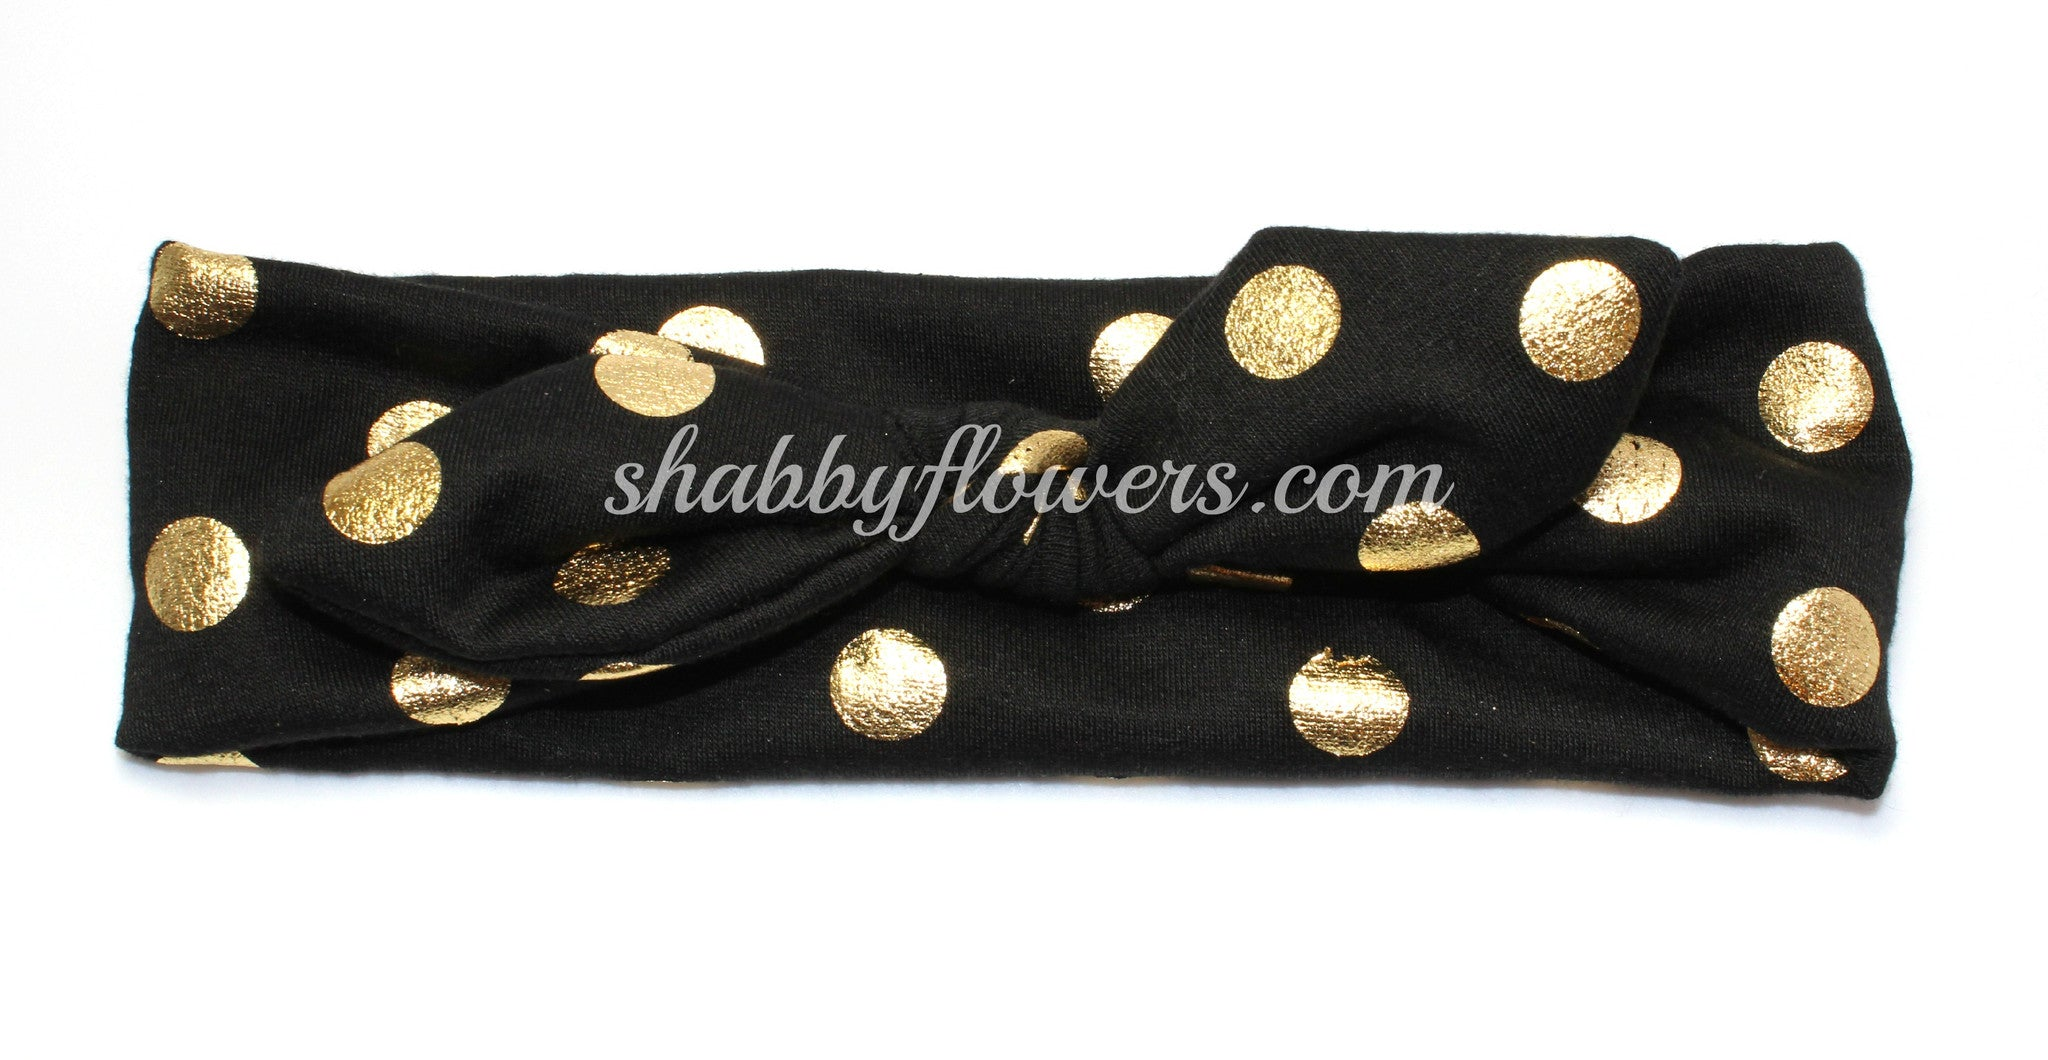 Knot Headband- Gold Foil Dots on Black - Regular - shabbyflowers.com